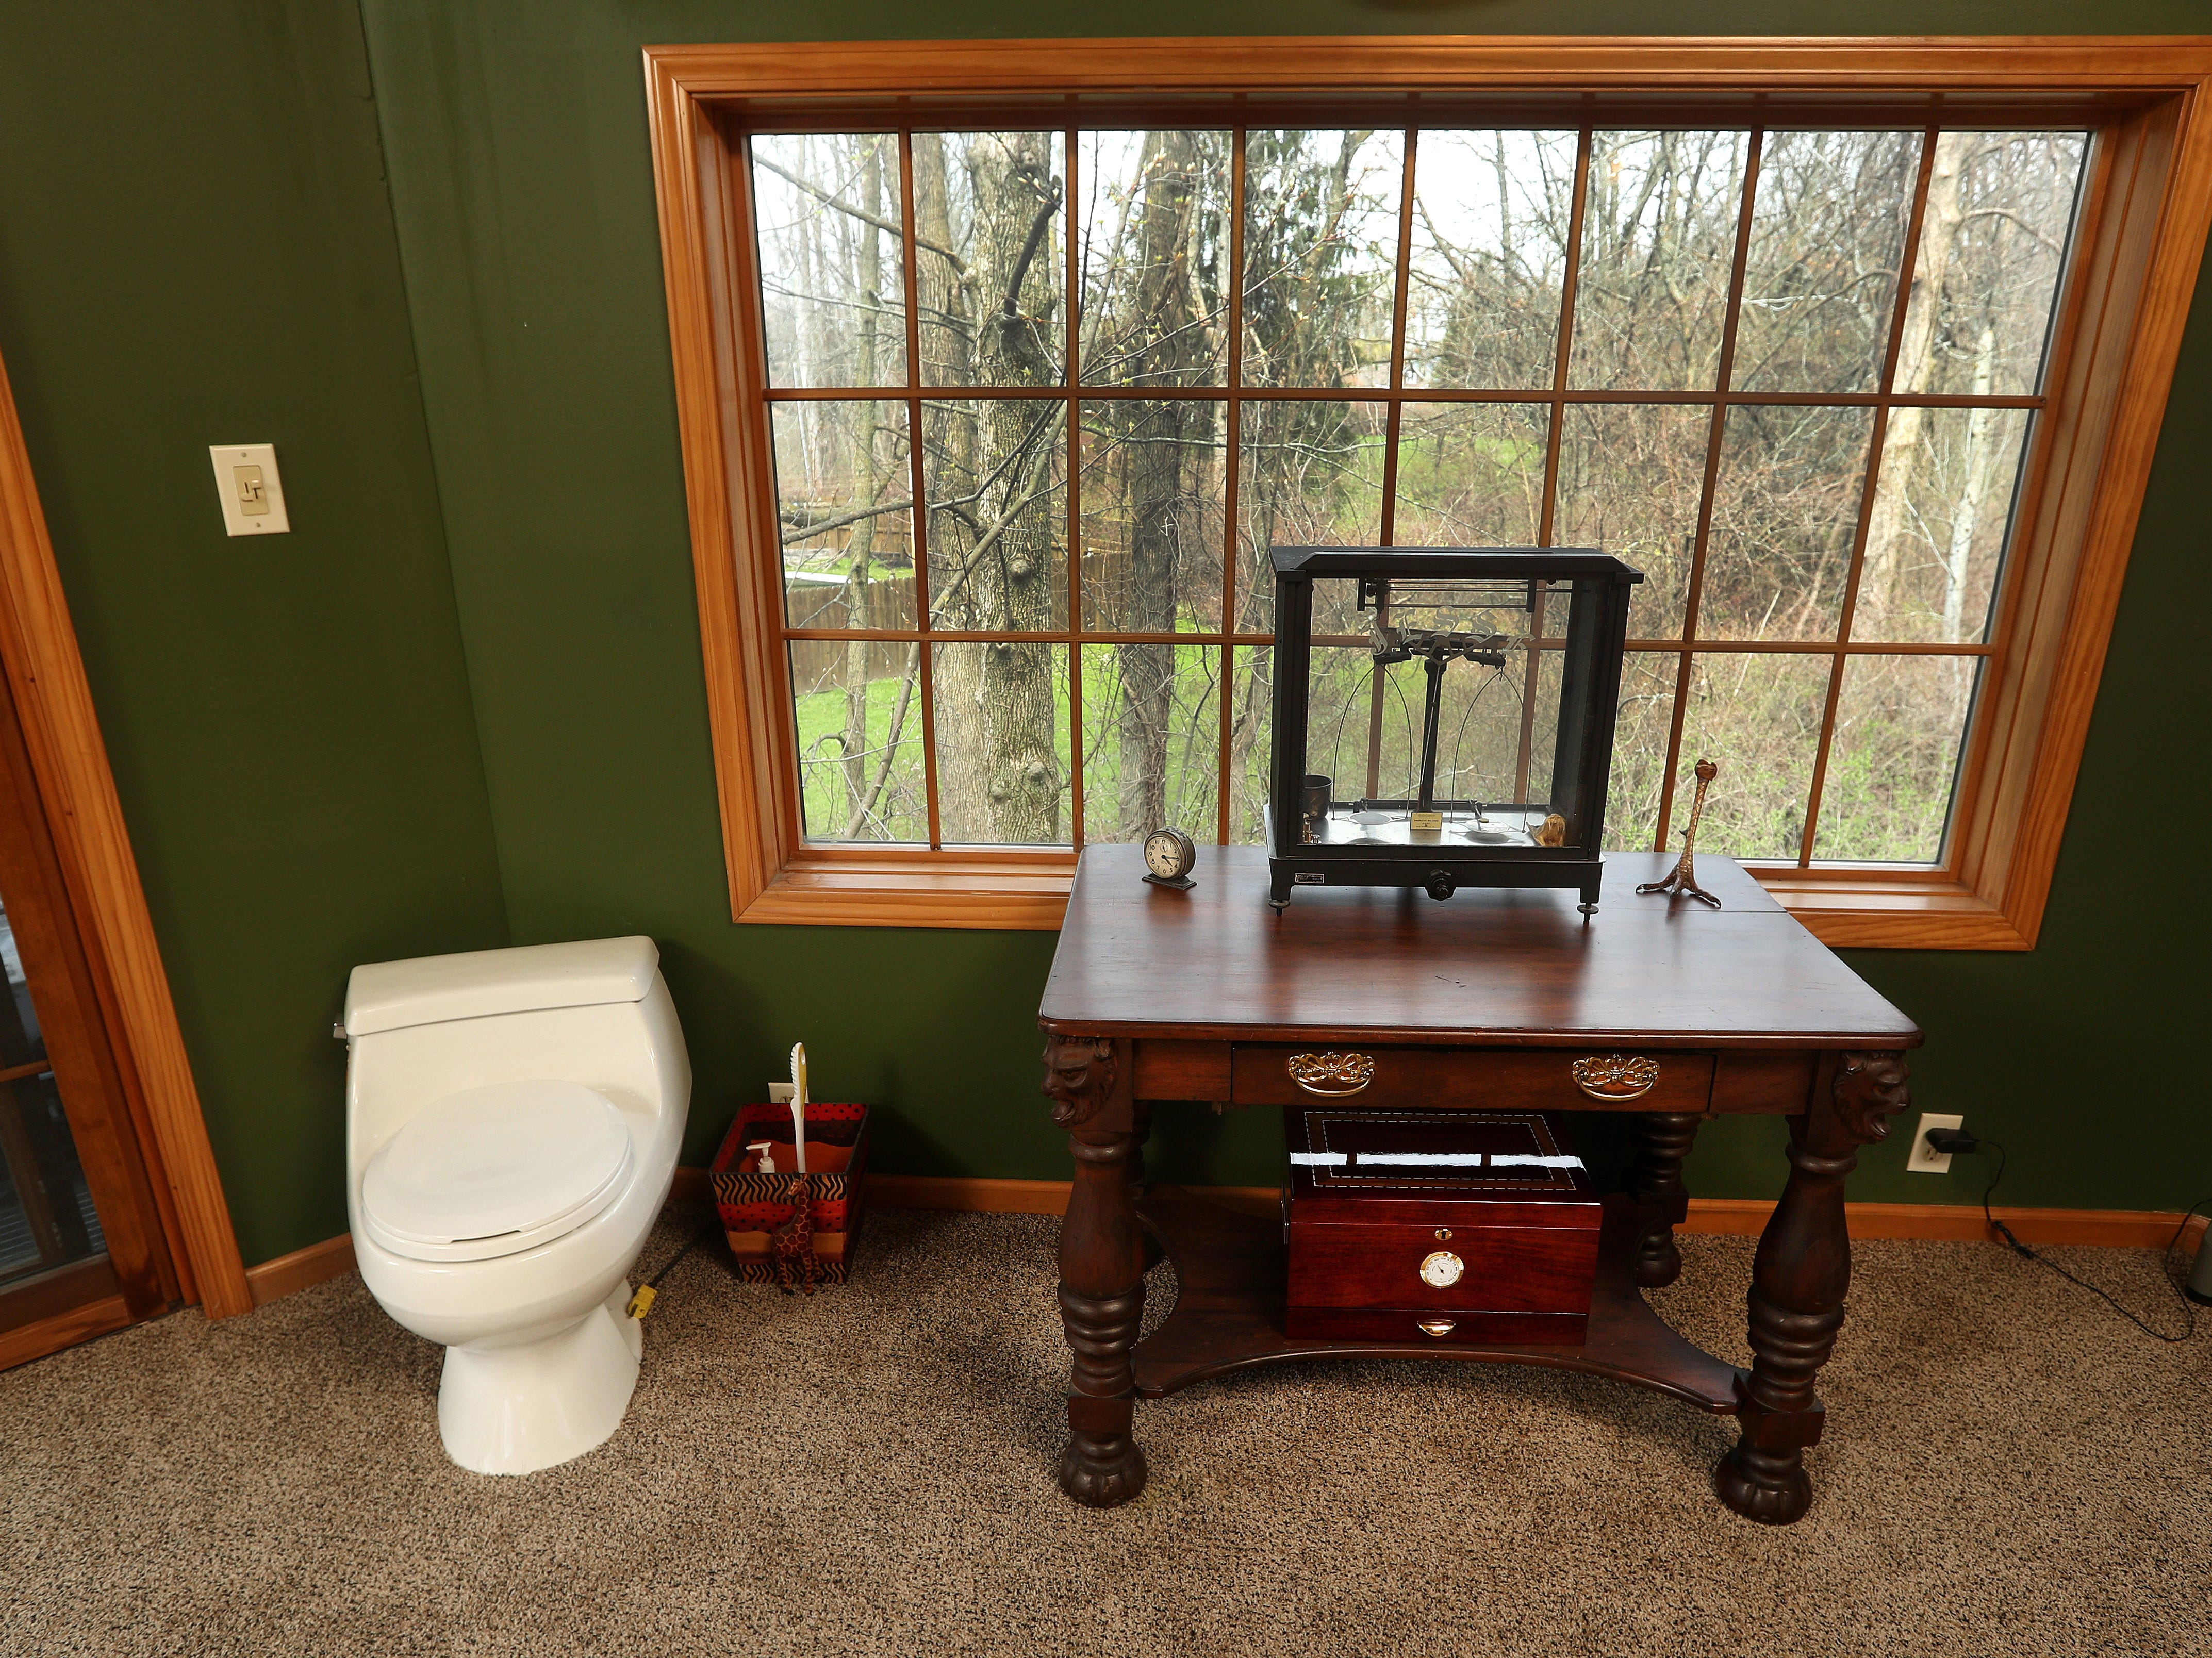 A commode in the open area of the treehouse.